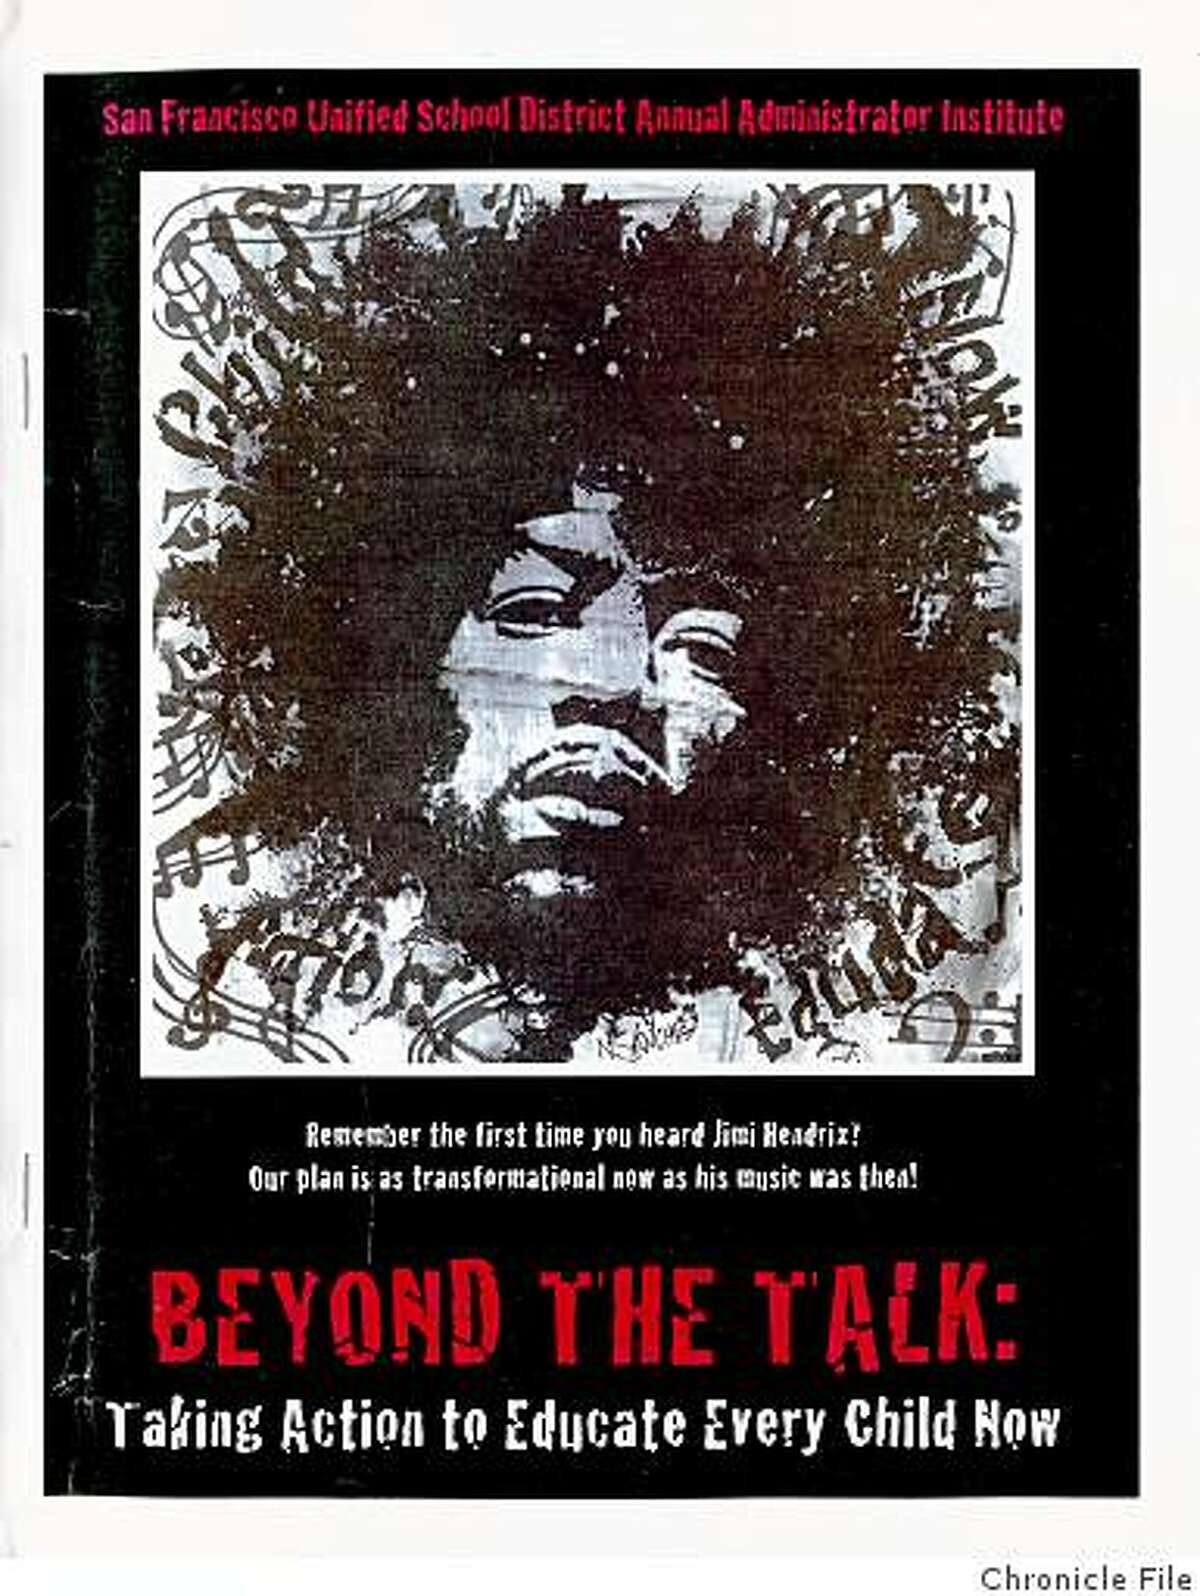 mandr_hendrix.jpg March 20, 2009 - Rock legend Jimi Hendrix has a starring role in San Francisco Unified School District's plan to transform the city's schools.handout/ San Francisco Chronicle File 2009